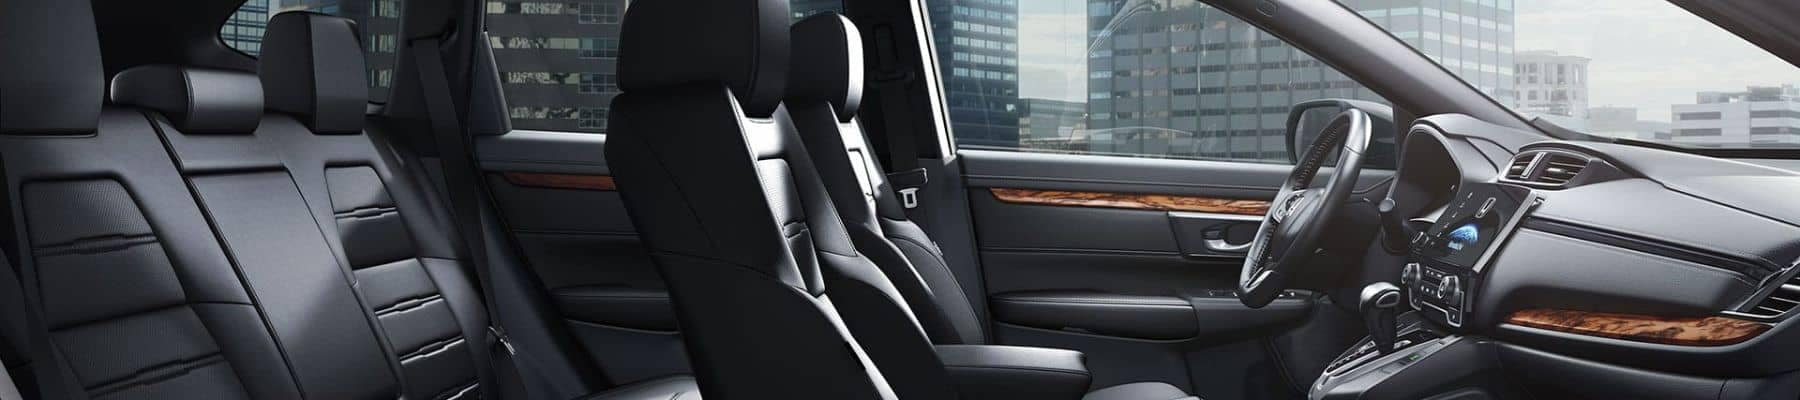 2019-honda-cr-v-interior